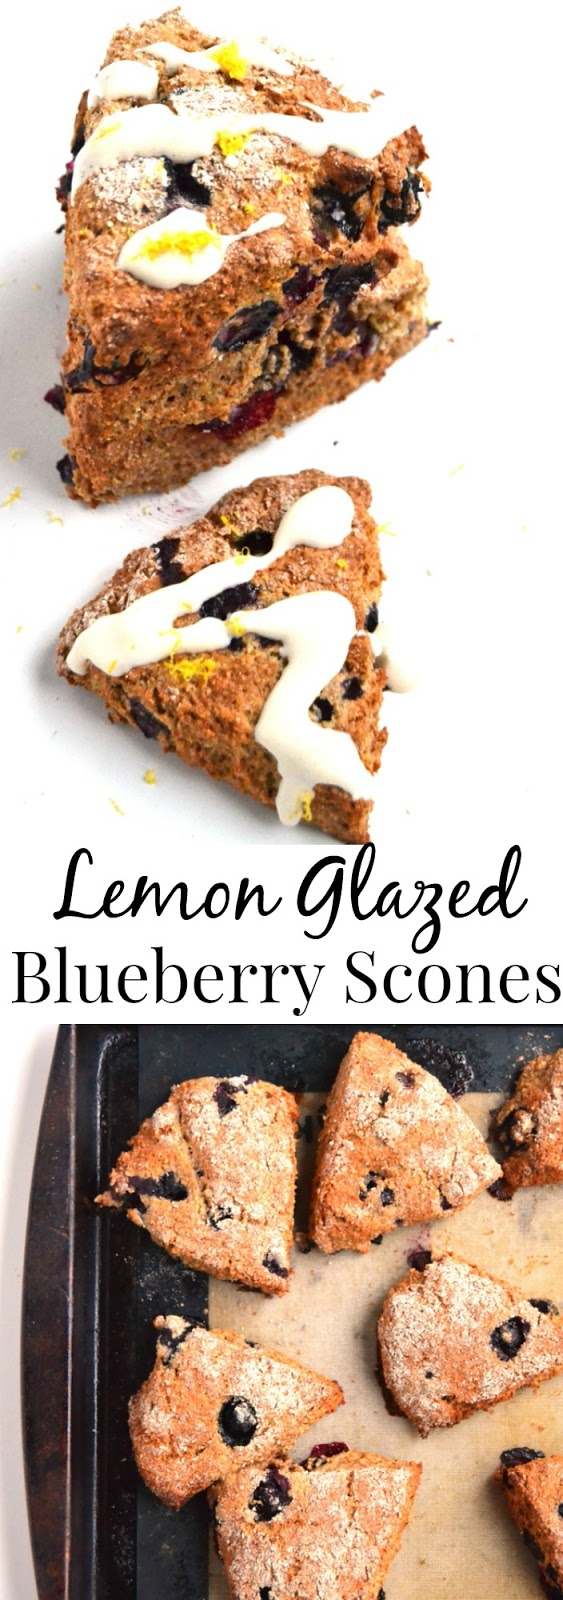 Lemon Glazed Blueberry Scones are simple to make and healthier than other versions with whole-wheat flour, fresh blueberries and a nutritious, flavorful glaze. www.nutritionistreviews.com